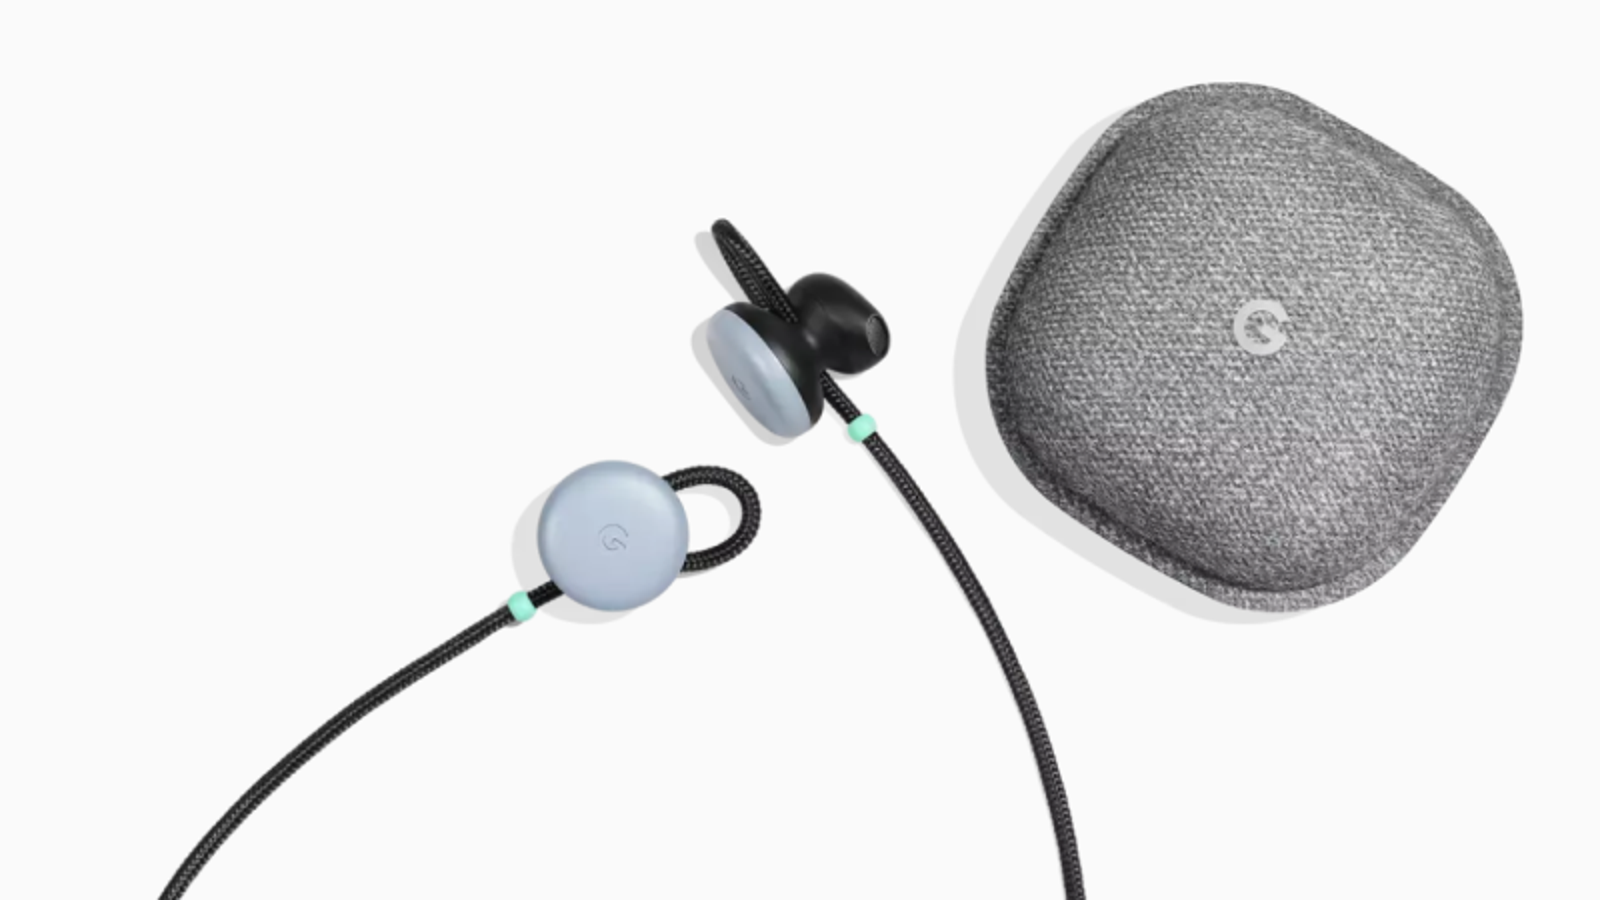 noise cancelling earbuds replacement pads - Google Wants to Beat AirPods with Software